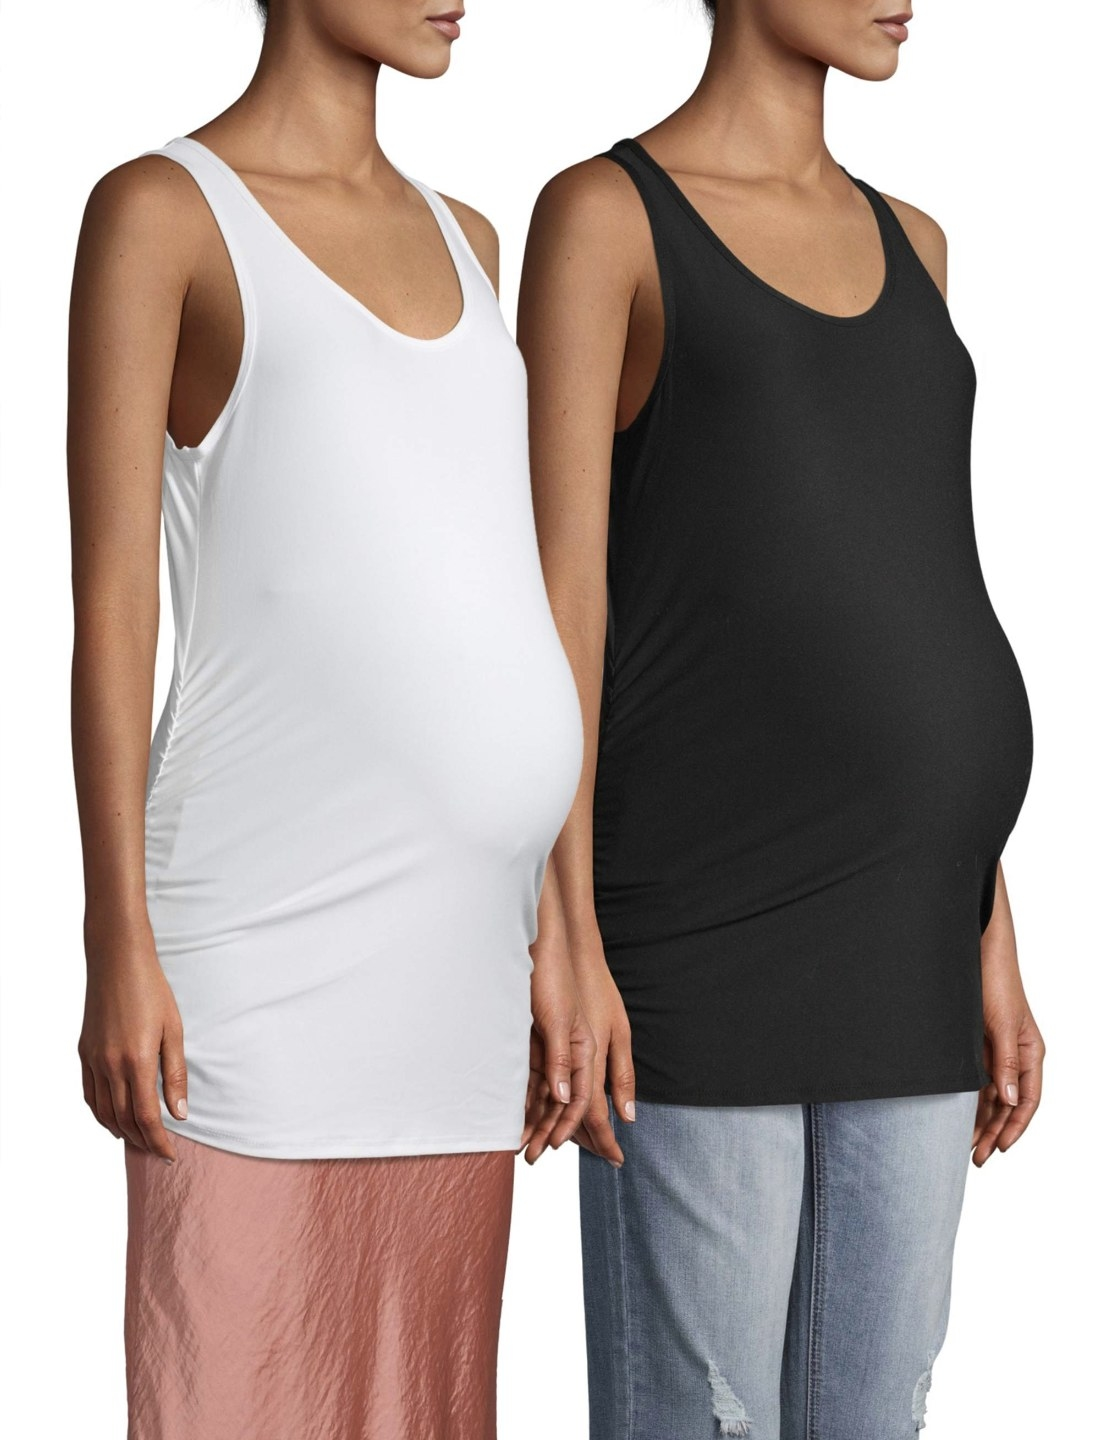 Pregnant models in the white and black tank tops